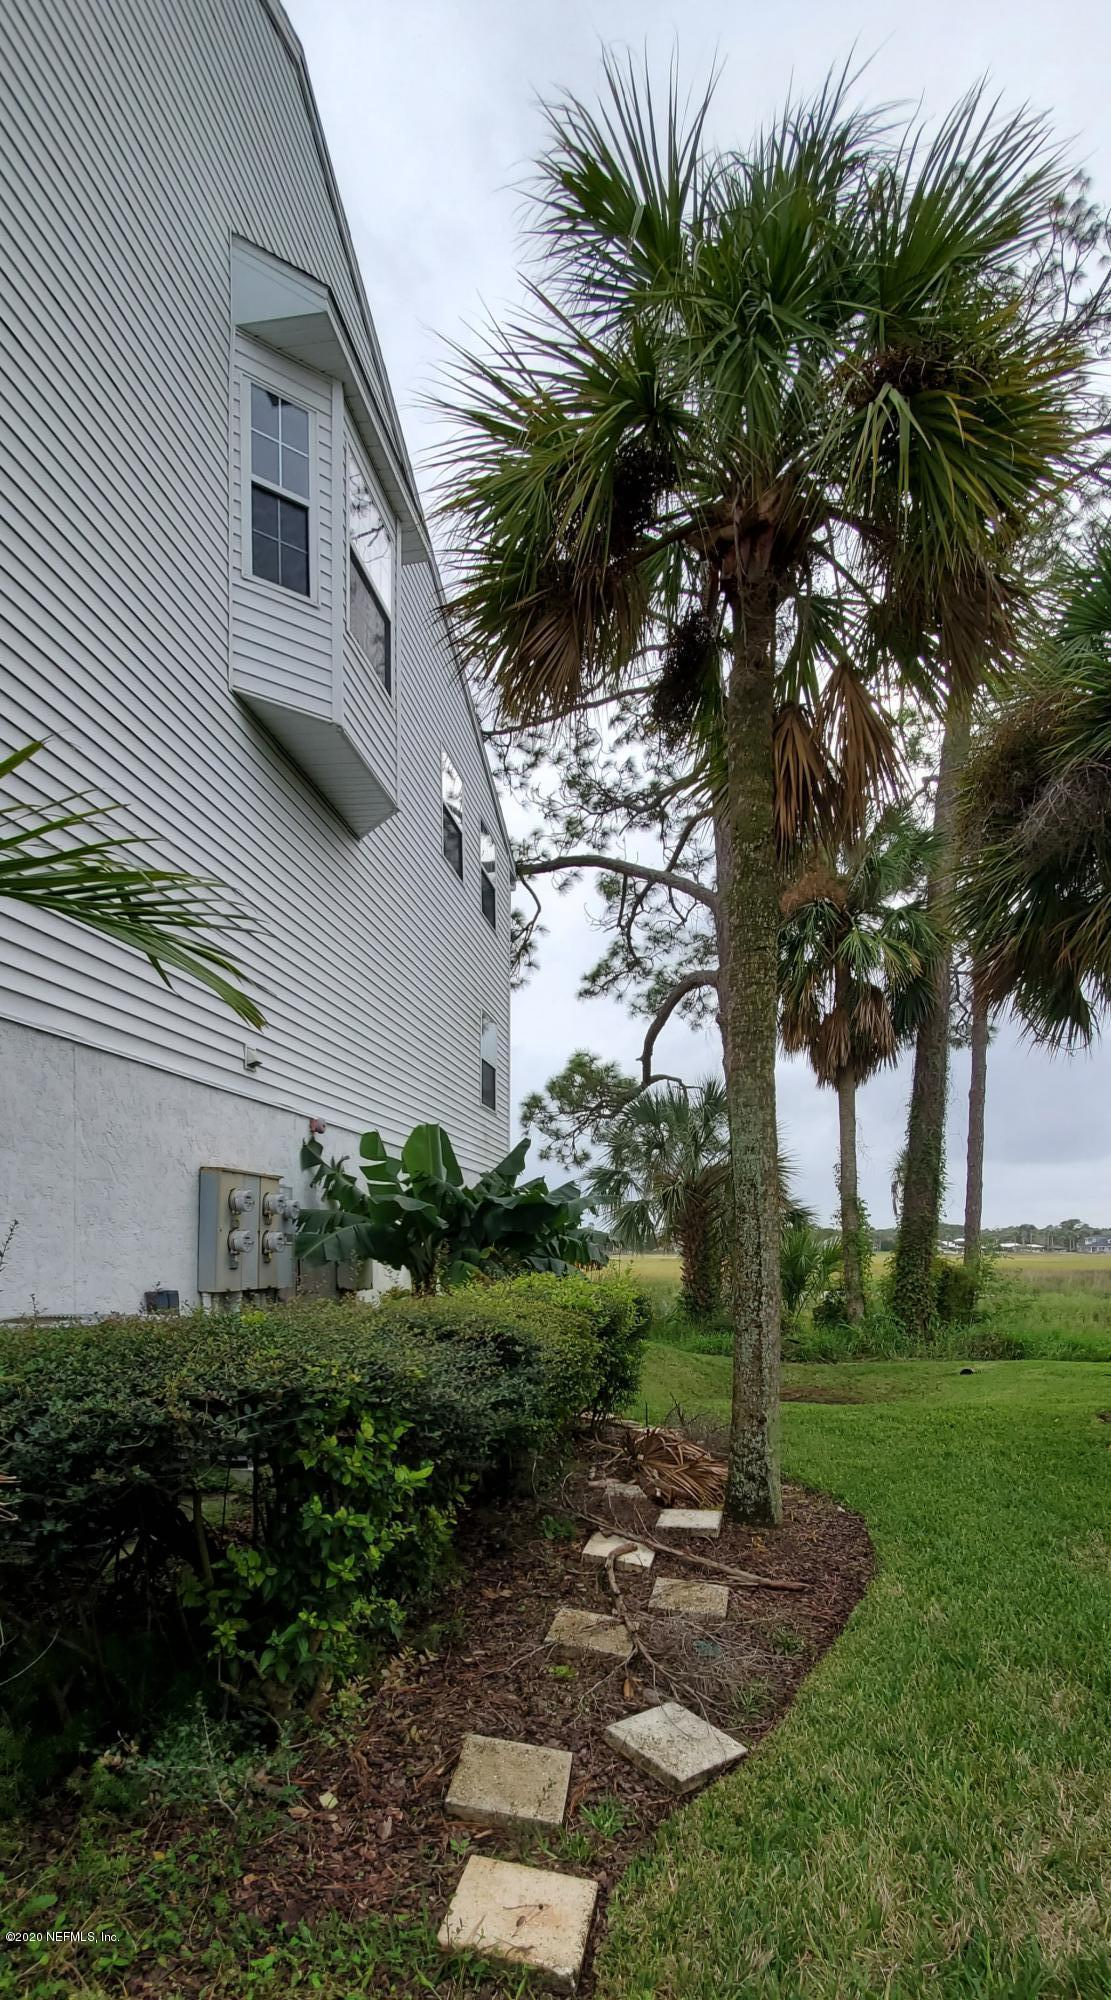 3376 LIGHTHOUSE POINT, JACKSONVILLE, FLORIDA 32250, 4 Bedrooms Bedrooms, ,4 BathroomsBathrooms,Residential,For sale,LIGHTHOUSE POINT,1082090